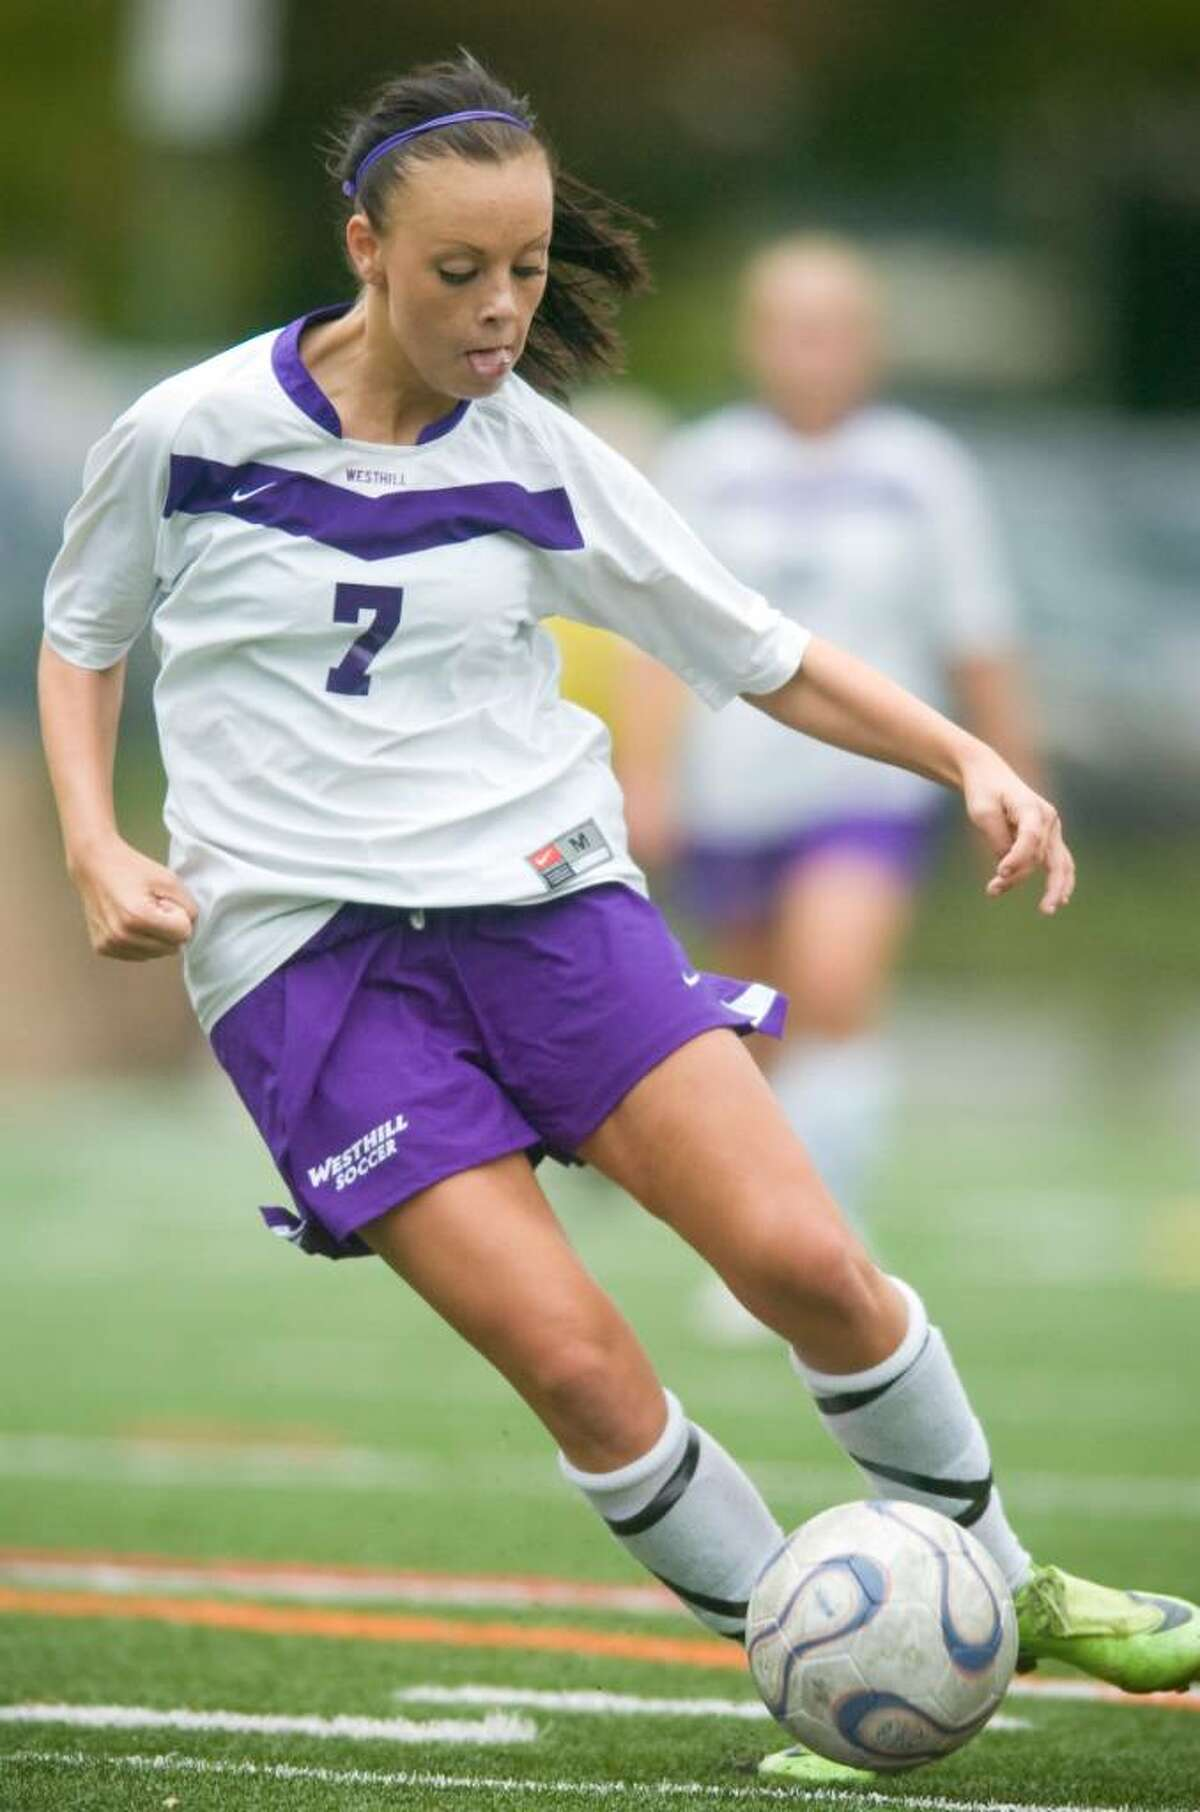 Westhill's Penny Cote during an FCIAC girls soccer match against Danbury High School at Westhill High School in Stamford on Wednesday, Sept. 30, 2009.